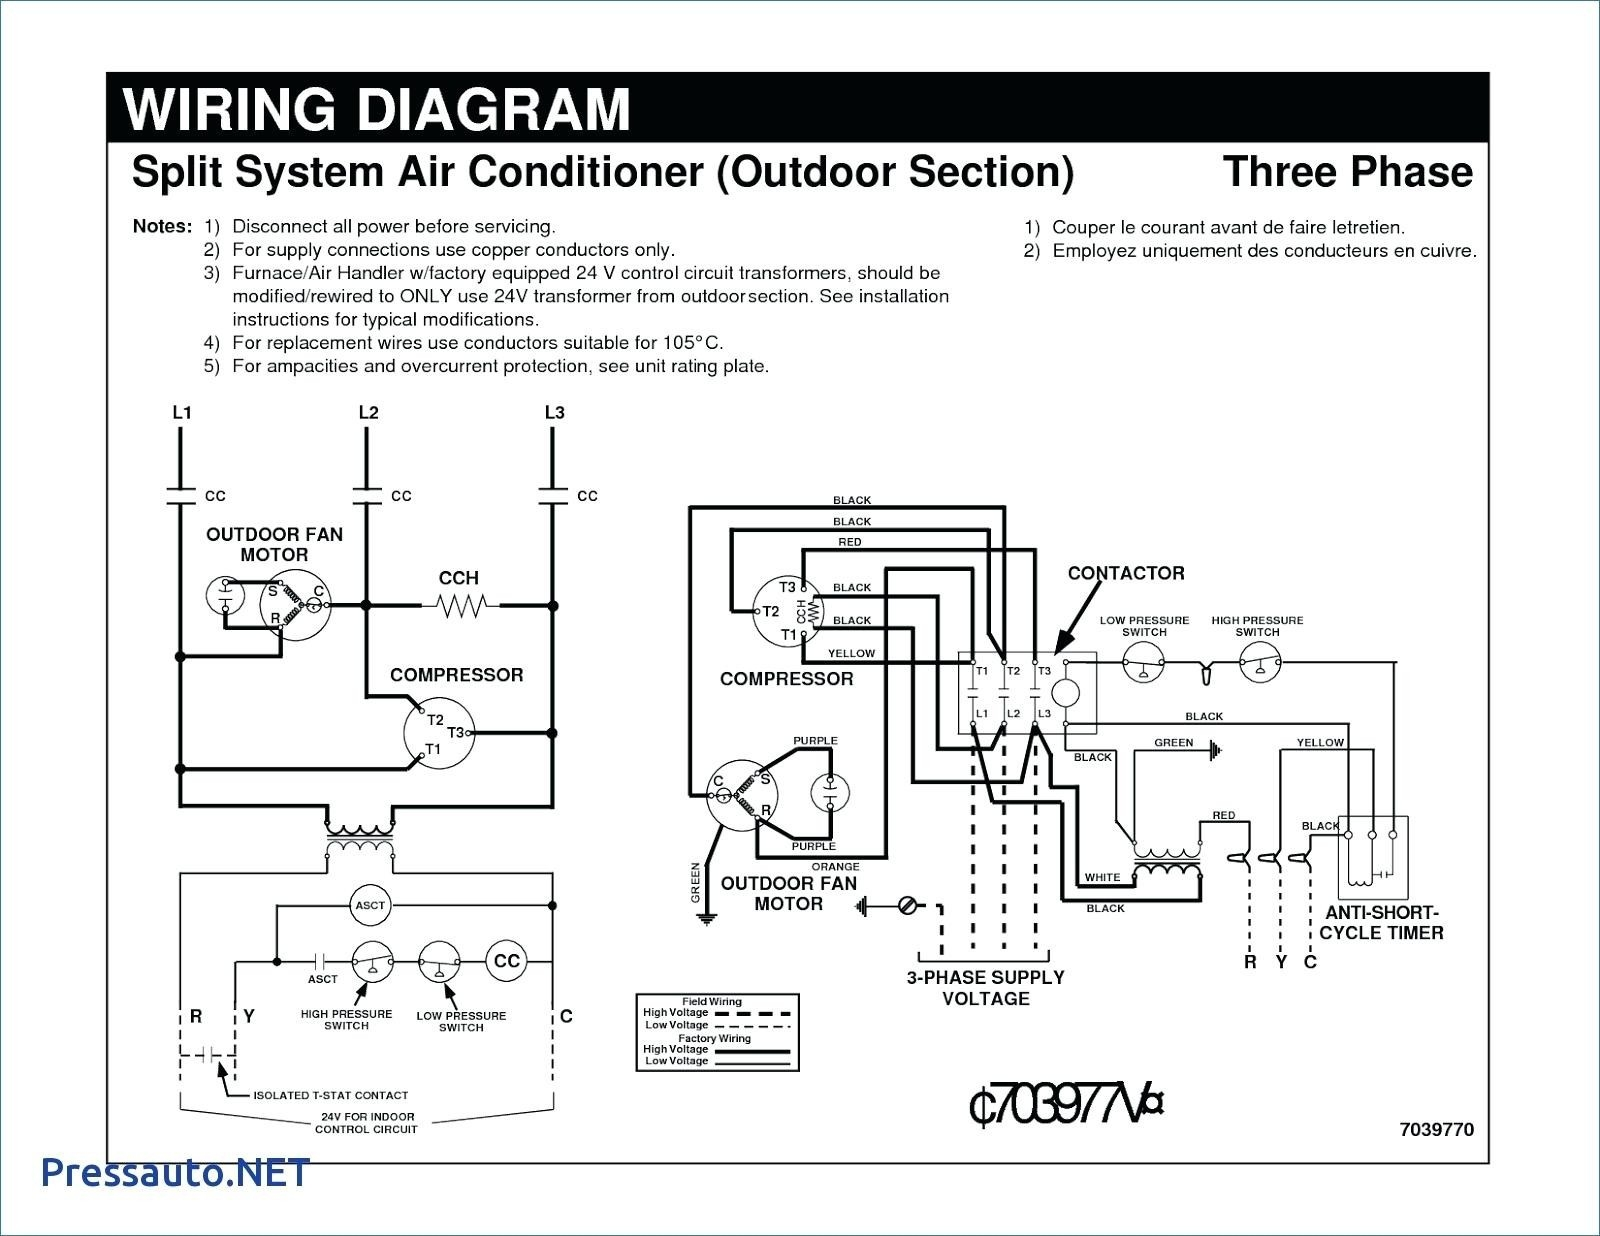 Honeywell Actuator Wiring Diagram - Wiring Diagram for Honeywell 2 Port  Valve Best Danfoss Relay Wiring